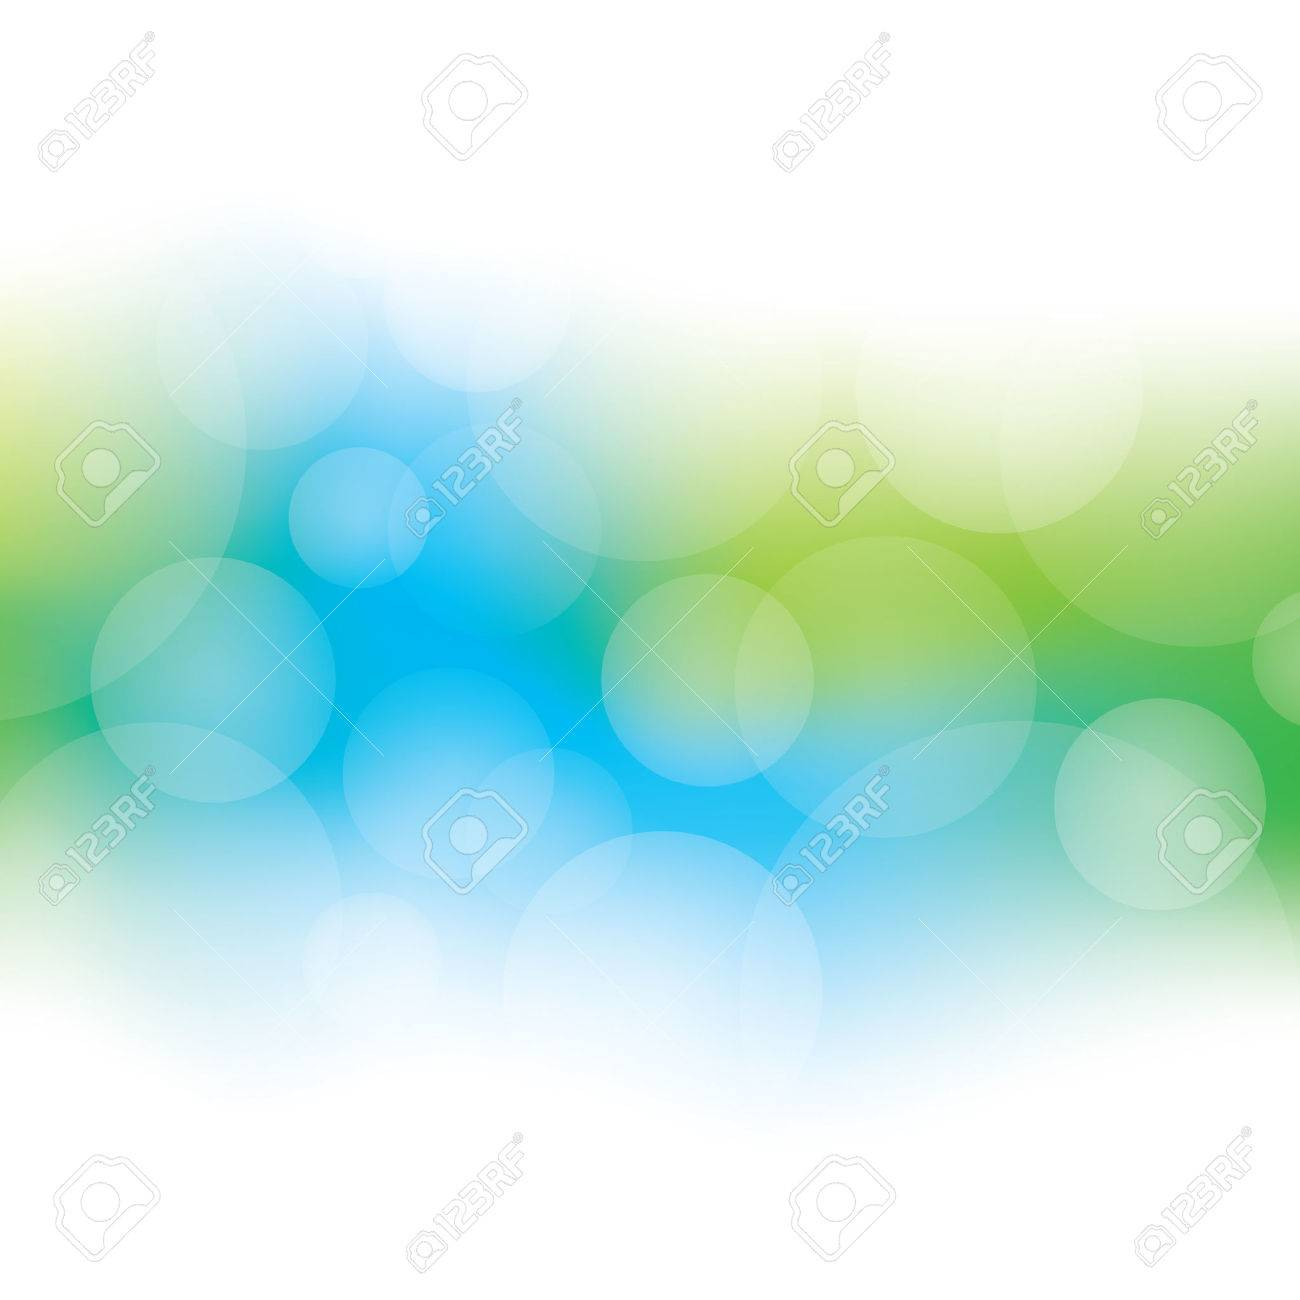 Abstract Bokeh Background - 22813990